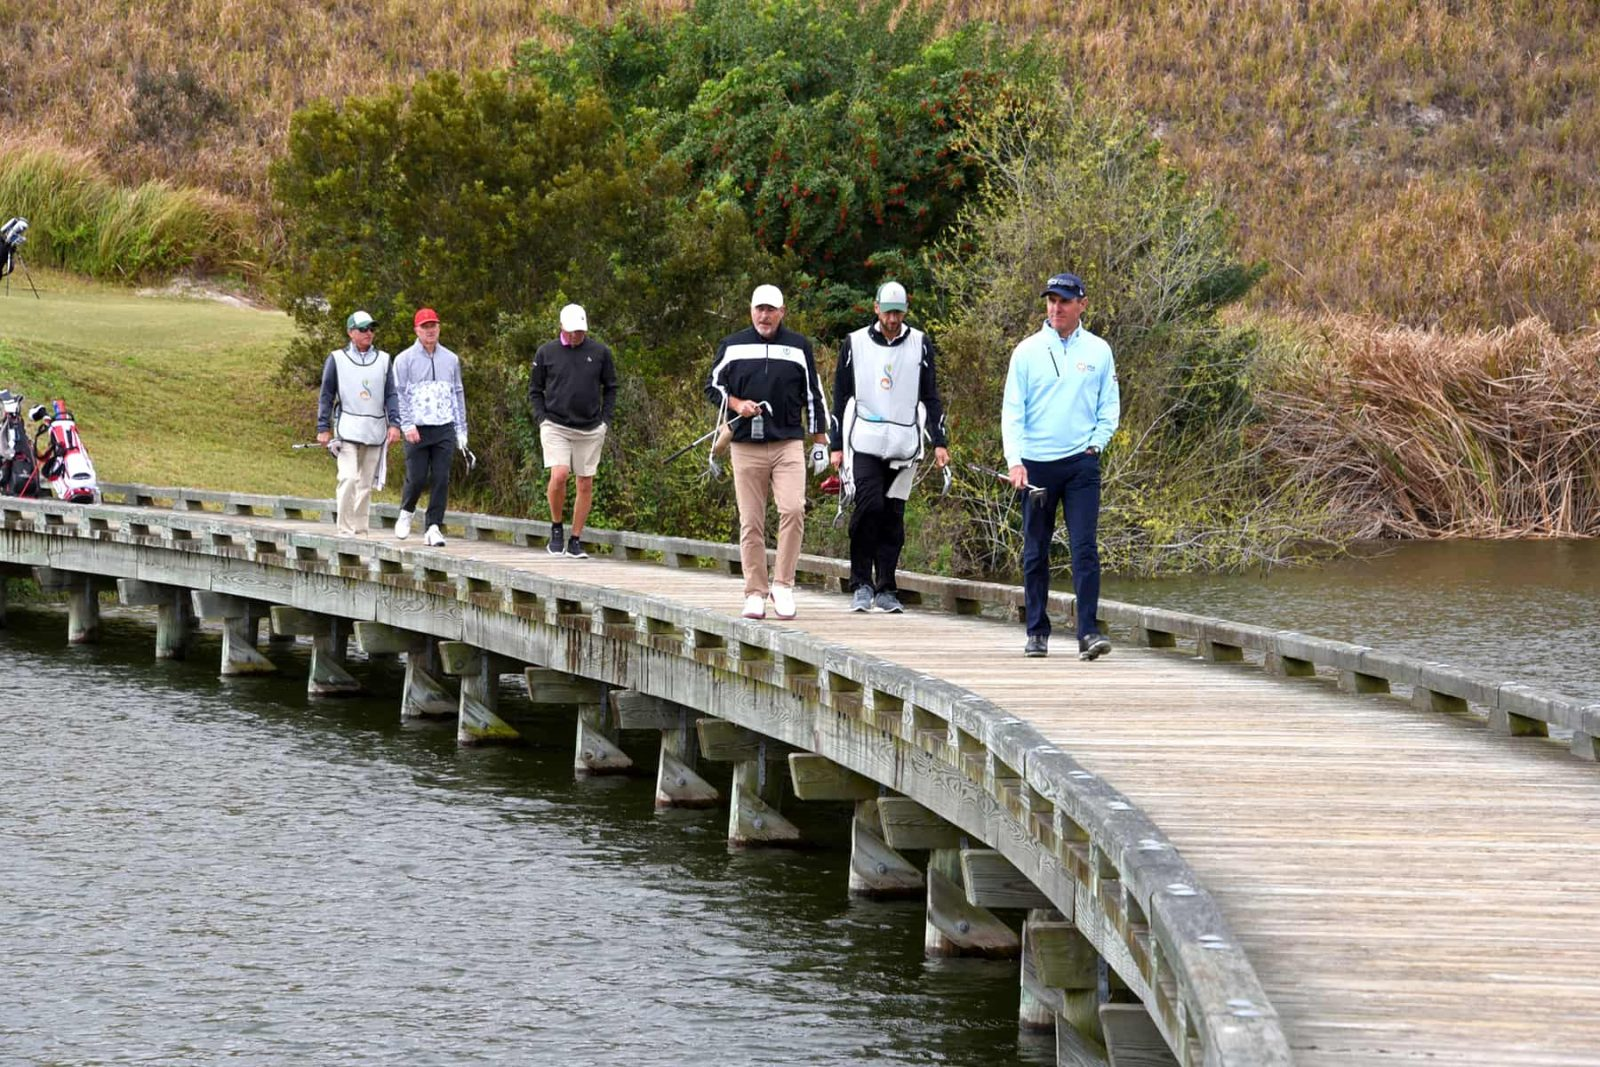 Golfers walking over water on course bridge